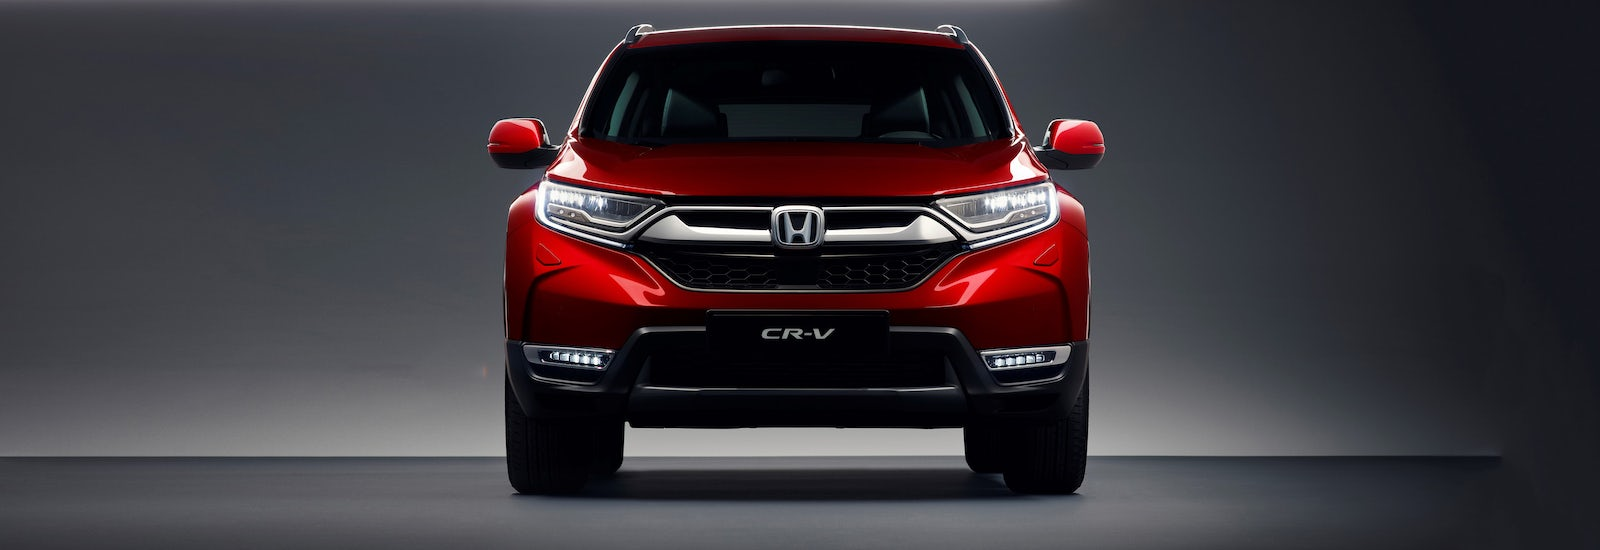 2018 honda cr v price specs and release date carwow for Honda crv 2018 release date usa